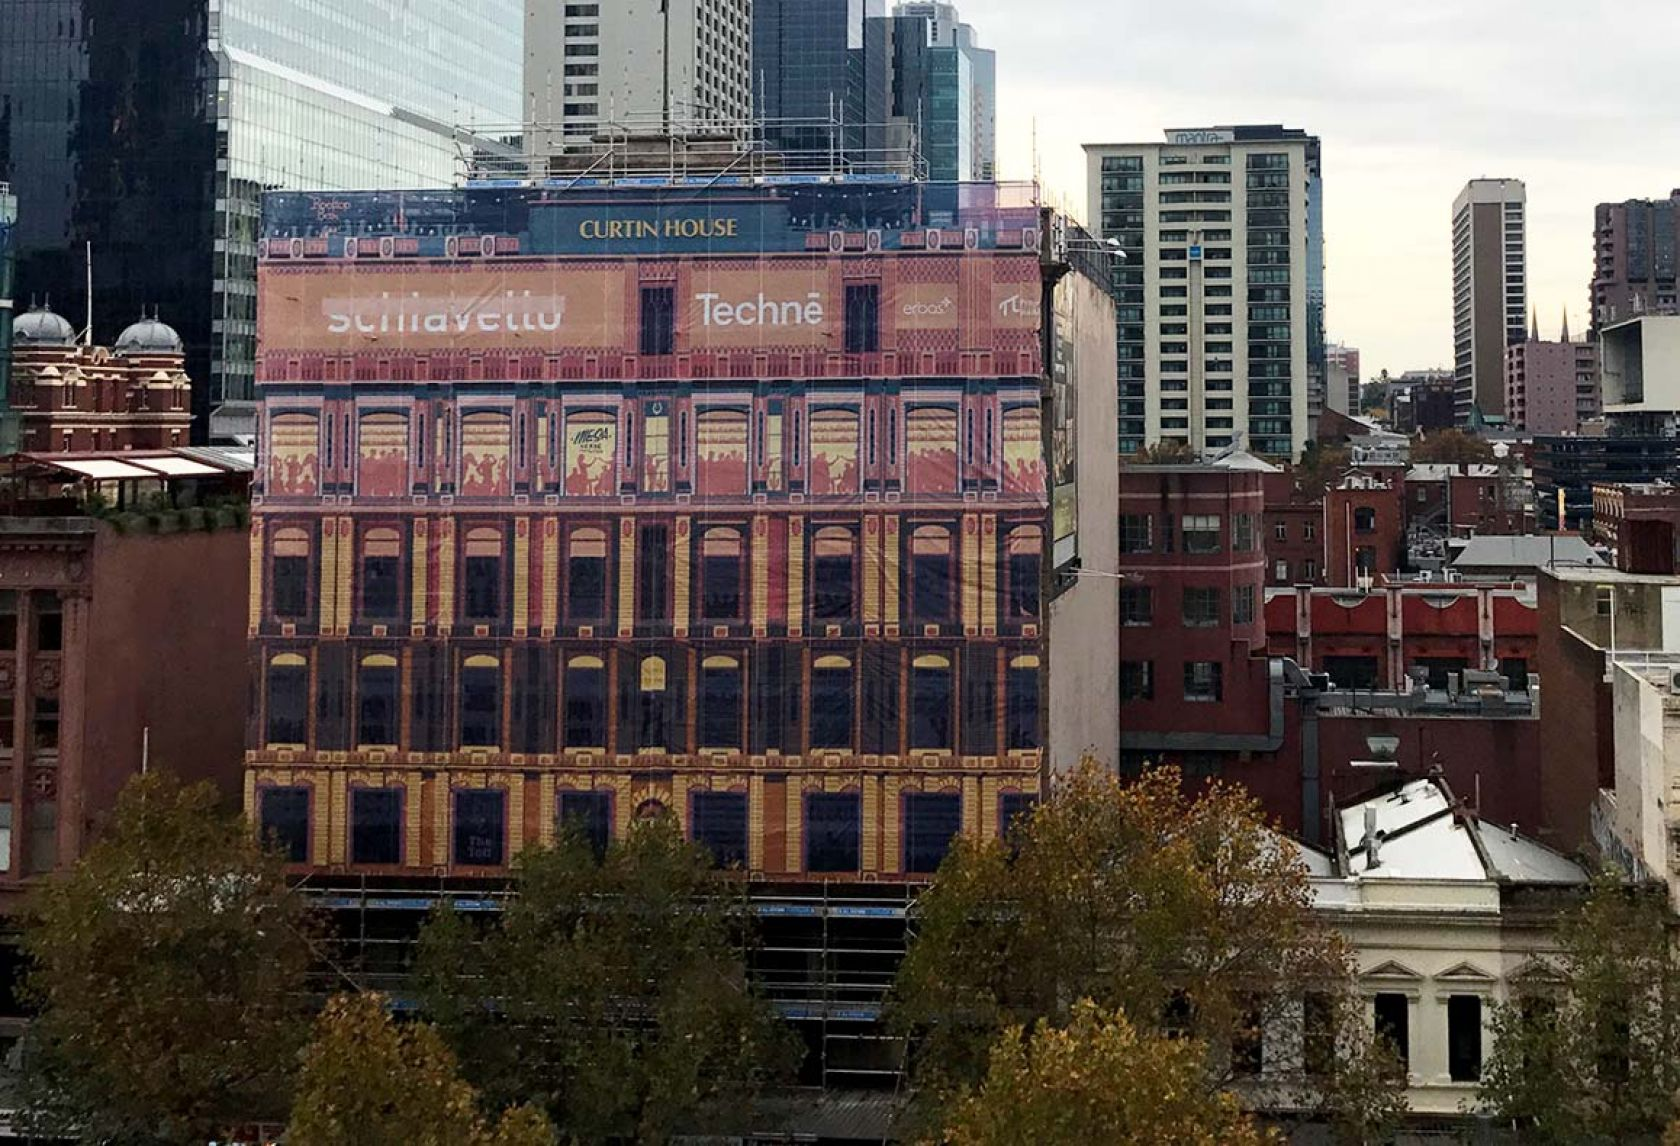 curtin house facade banner on construction site swanston street